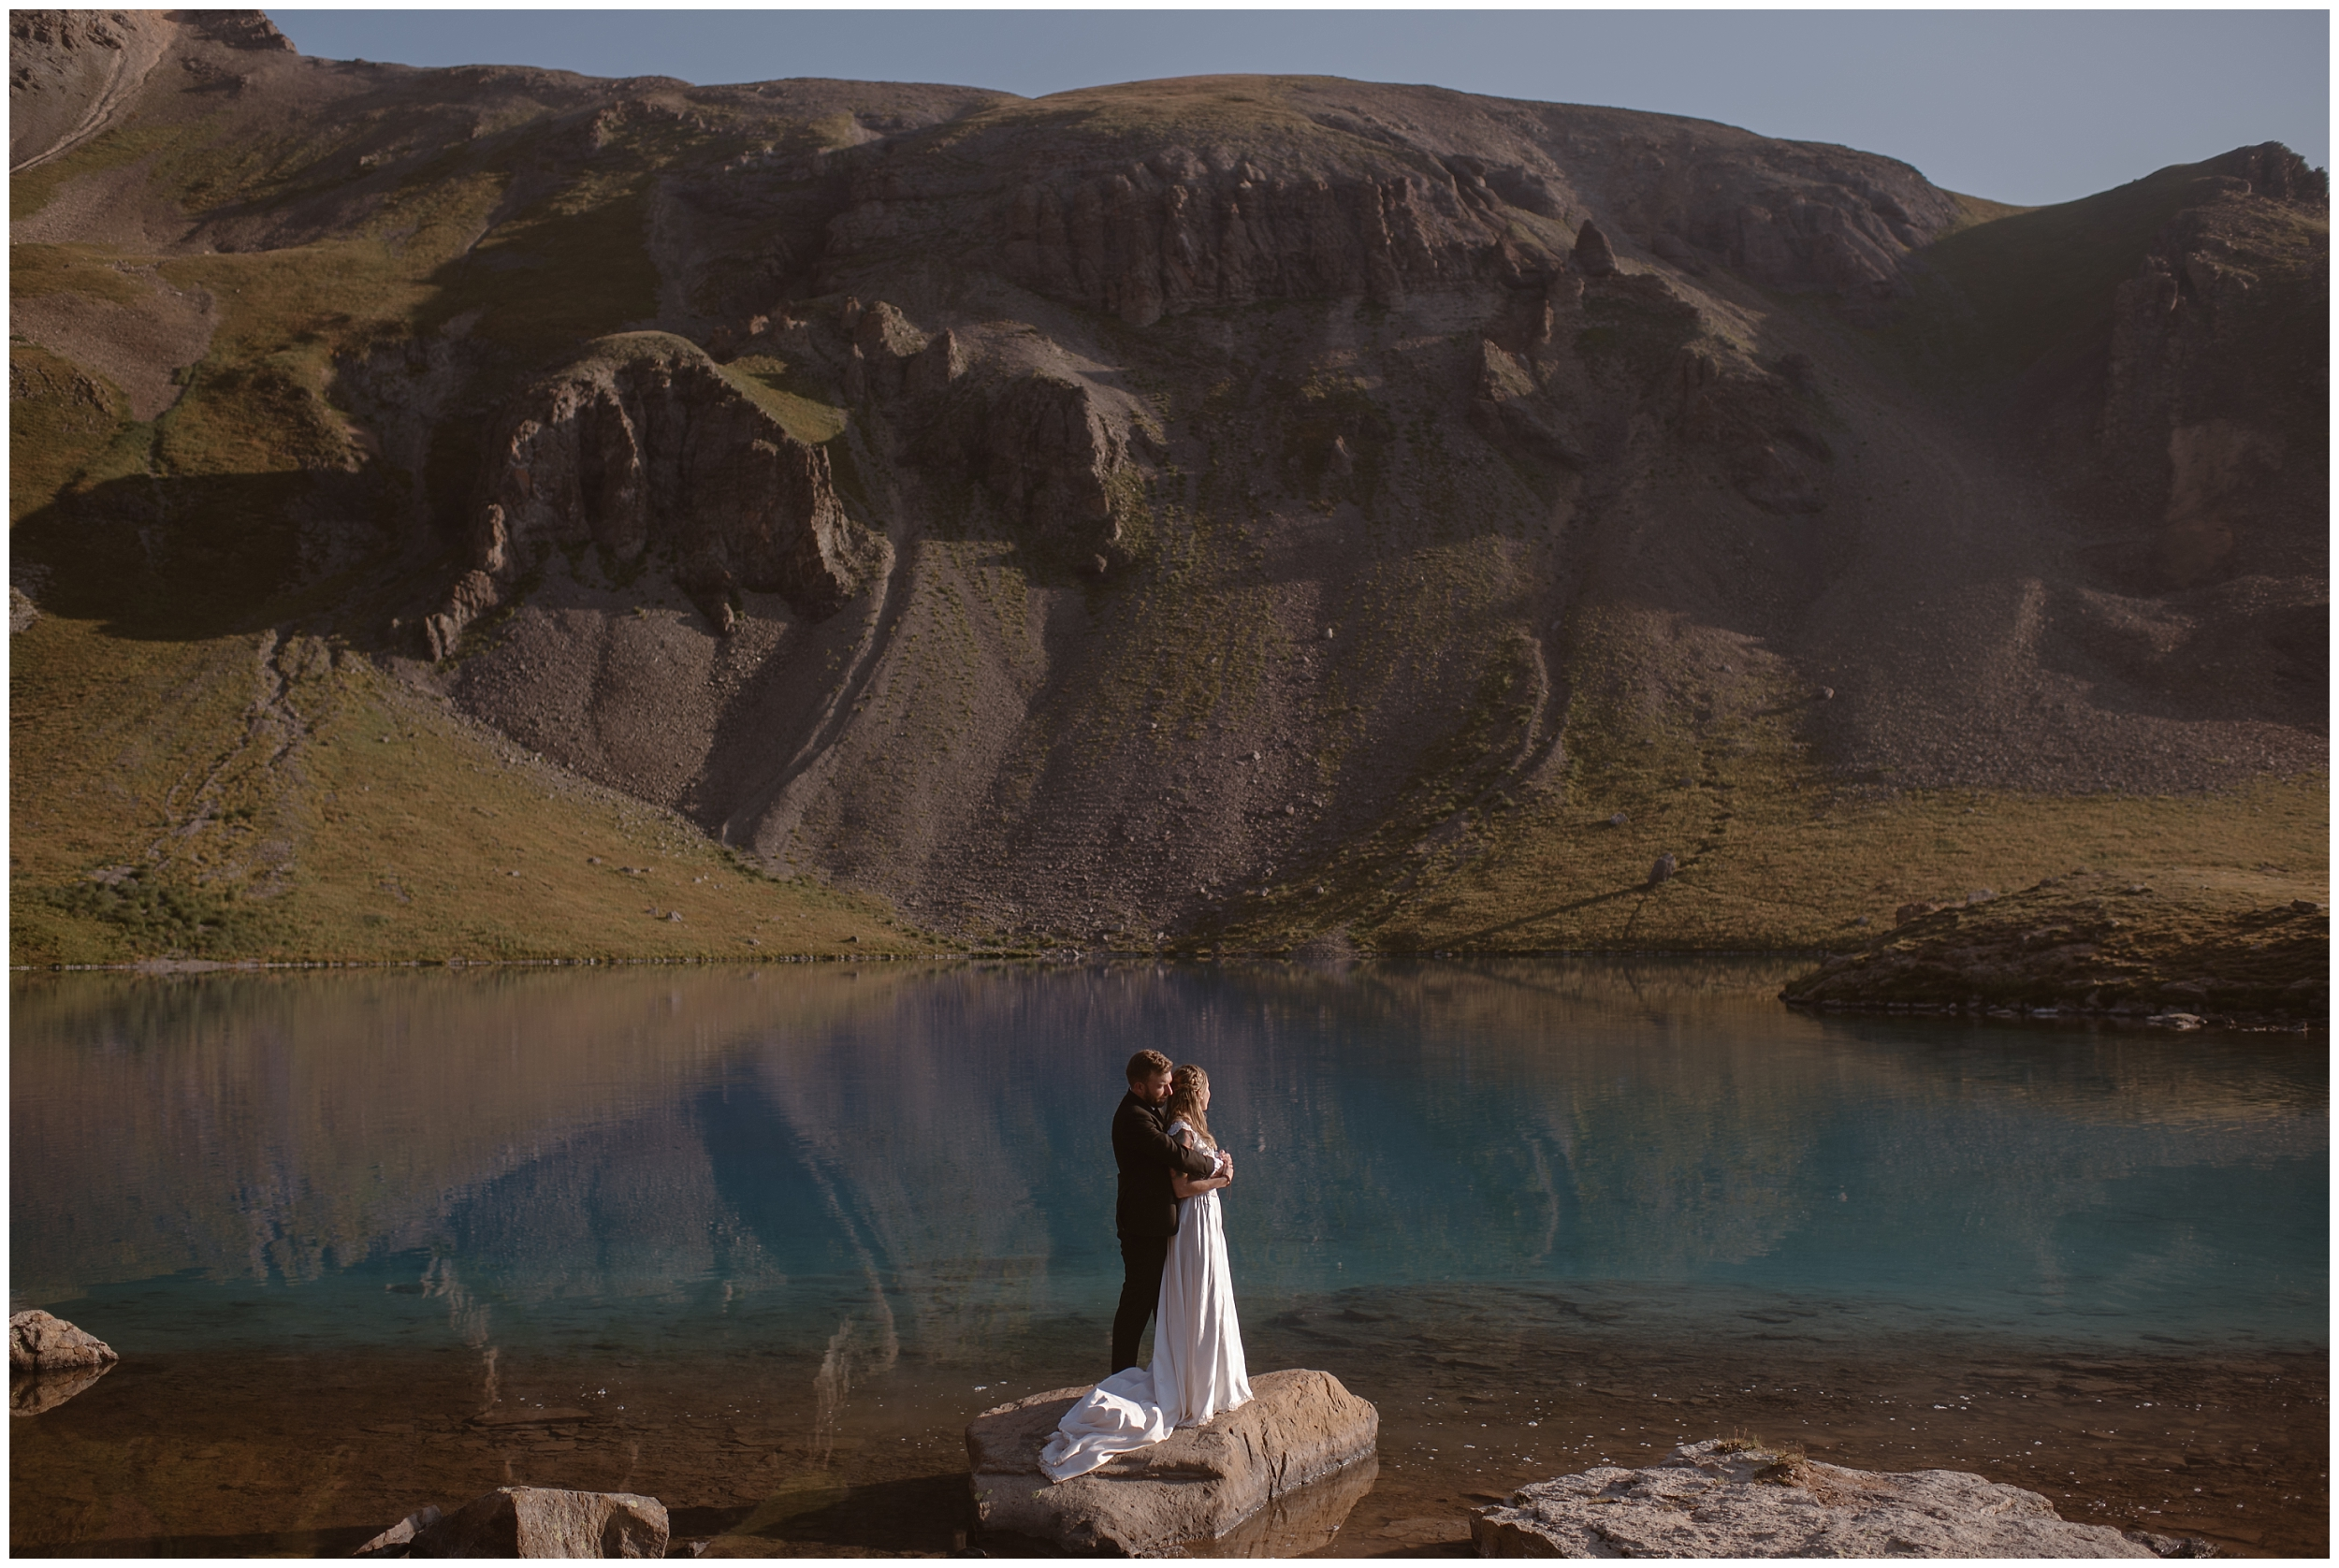 Behind a bride and a groom, a multi-colored blue and green lake can be seen in the middle of a mountainous valley. These two wanted to include this location as part of their small simple wedding, which is one of the best elopement ideas.